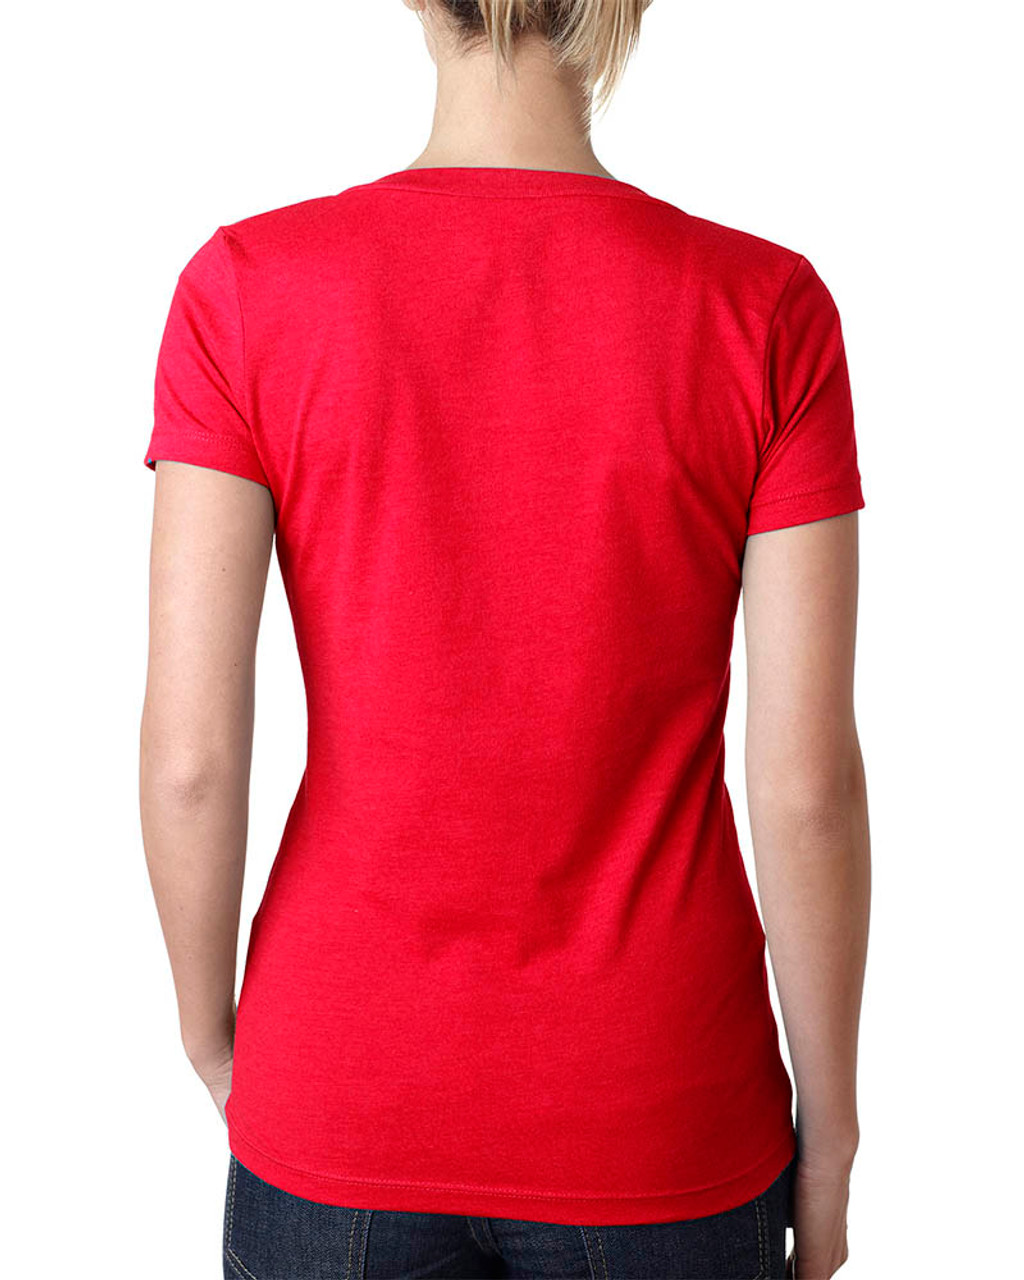 Red - 6640 Next Level Ladies' CVC Deep V-Neck T-shirt  | BlankClothing.ca